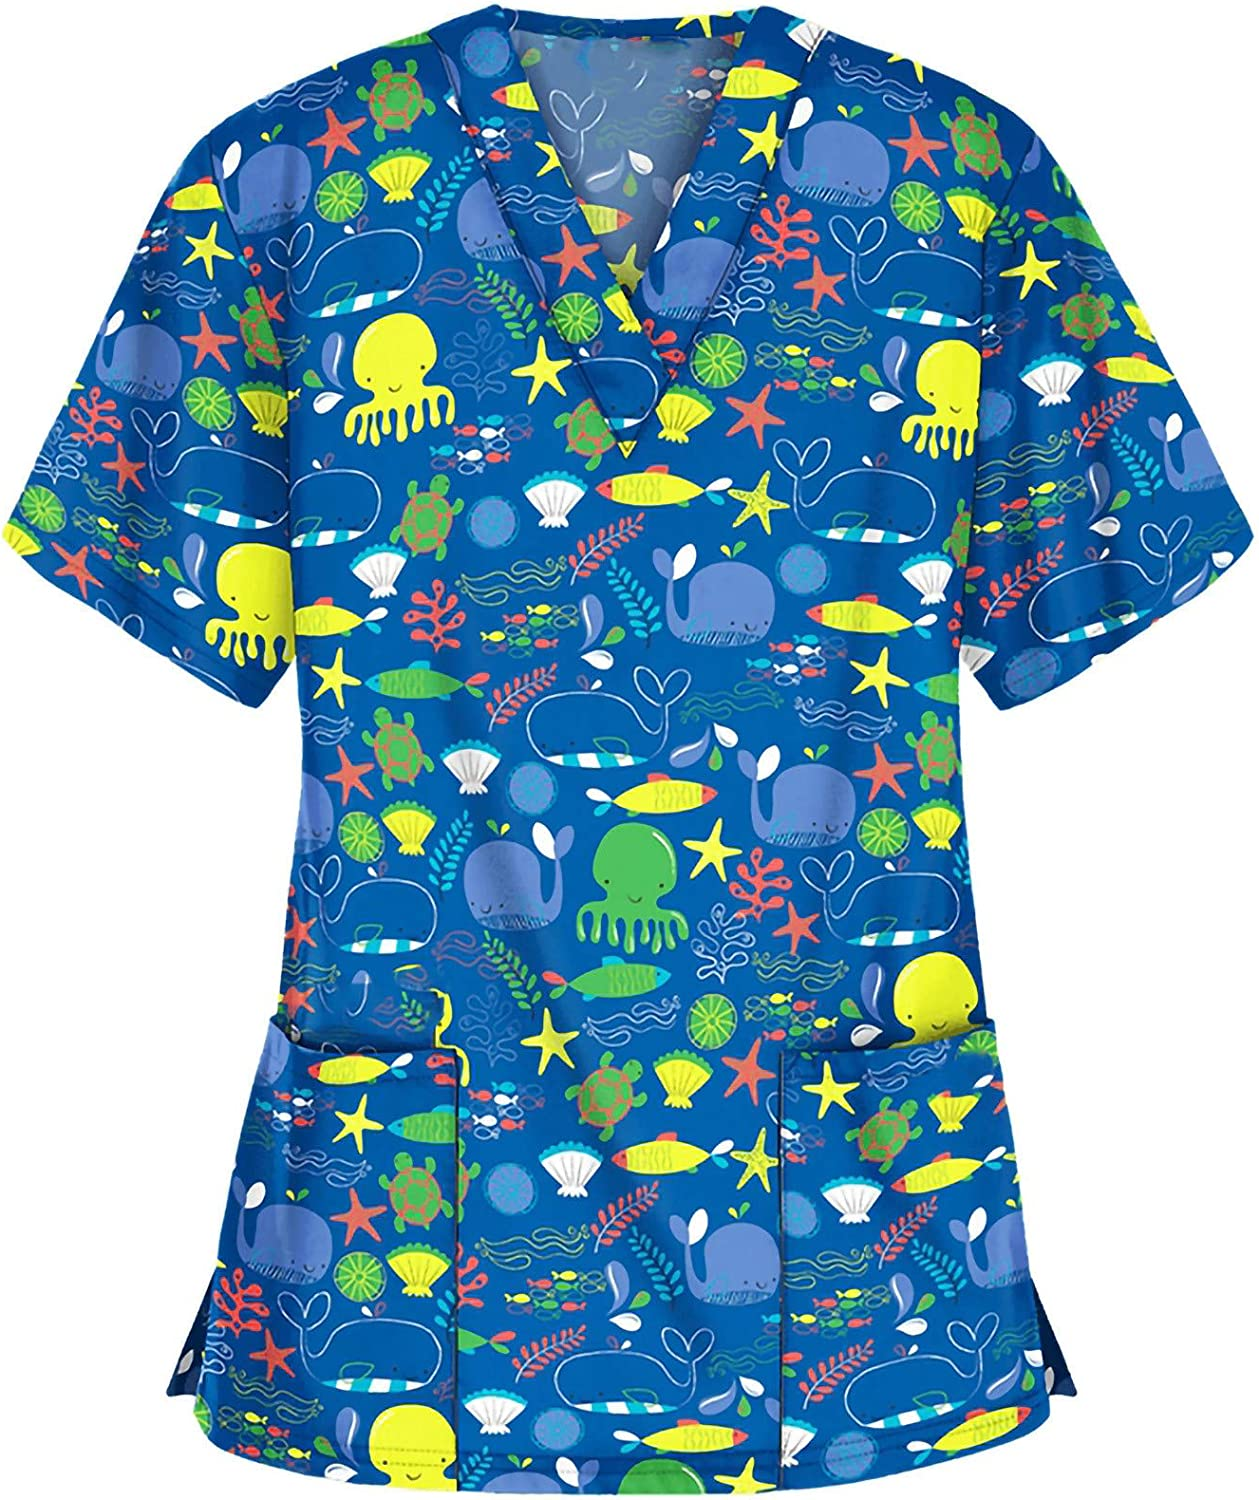 Cartoons Printed Shirts for Women Plus Size, Womens Oversized Tops and Blouses with Pockets, Woman V Neck Tees Uniform